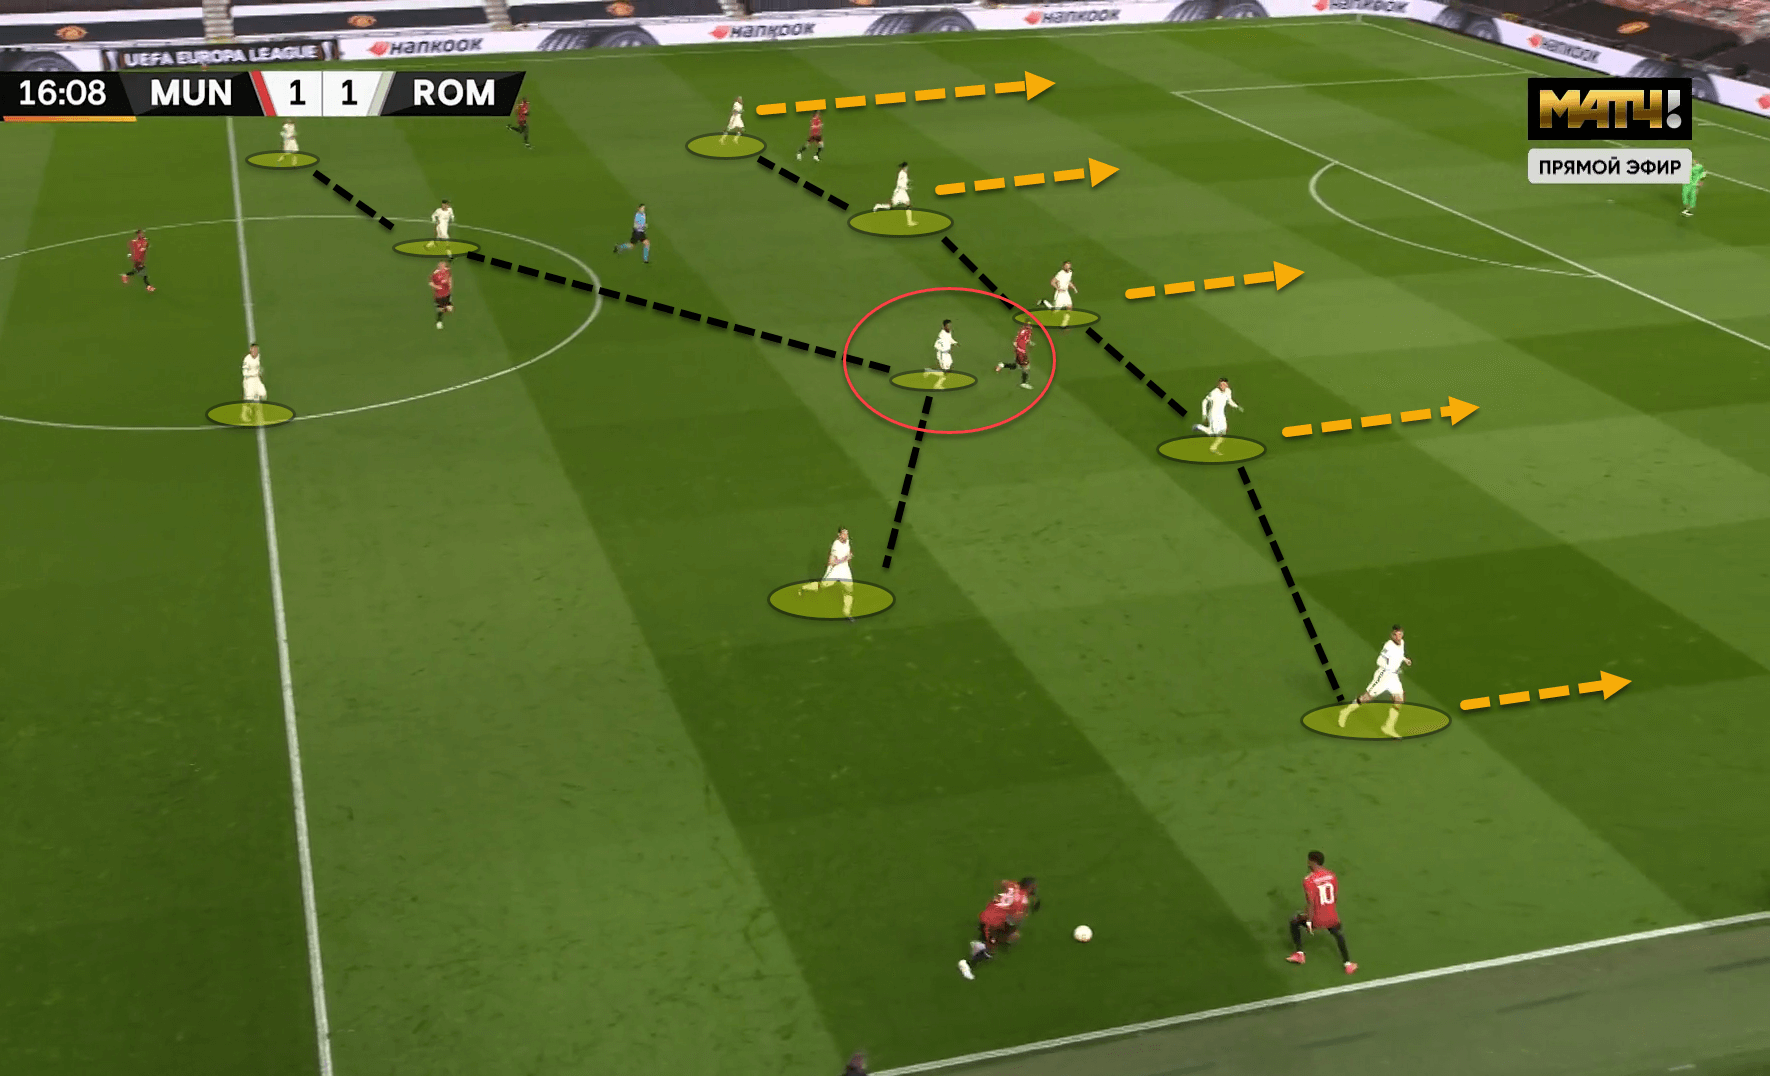 Fonseca's failures: How Roma were dismantled by Man United after a solid first-half display – tactical analysis